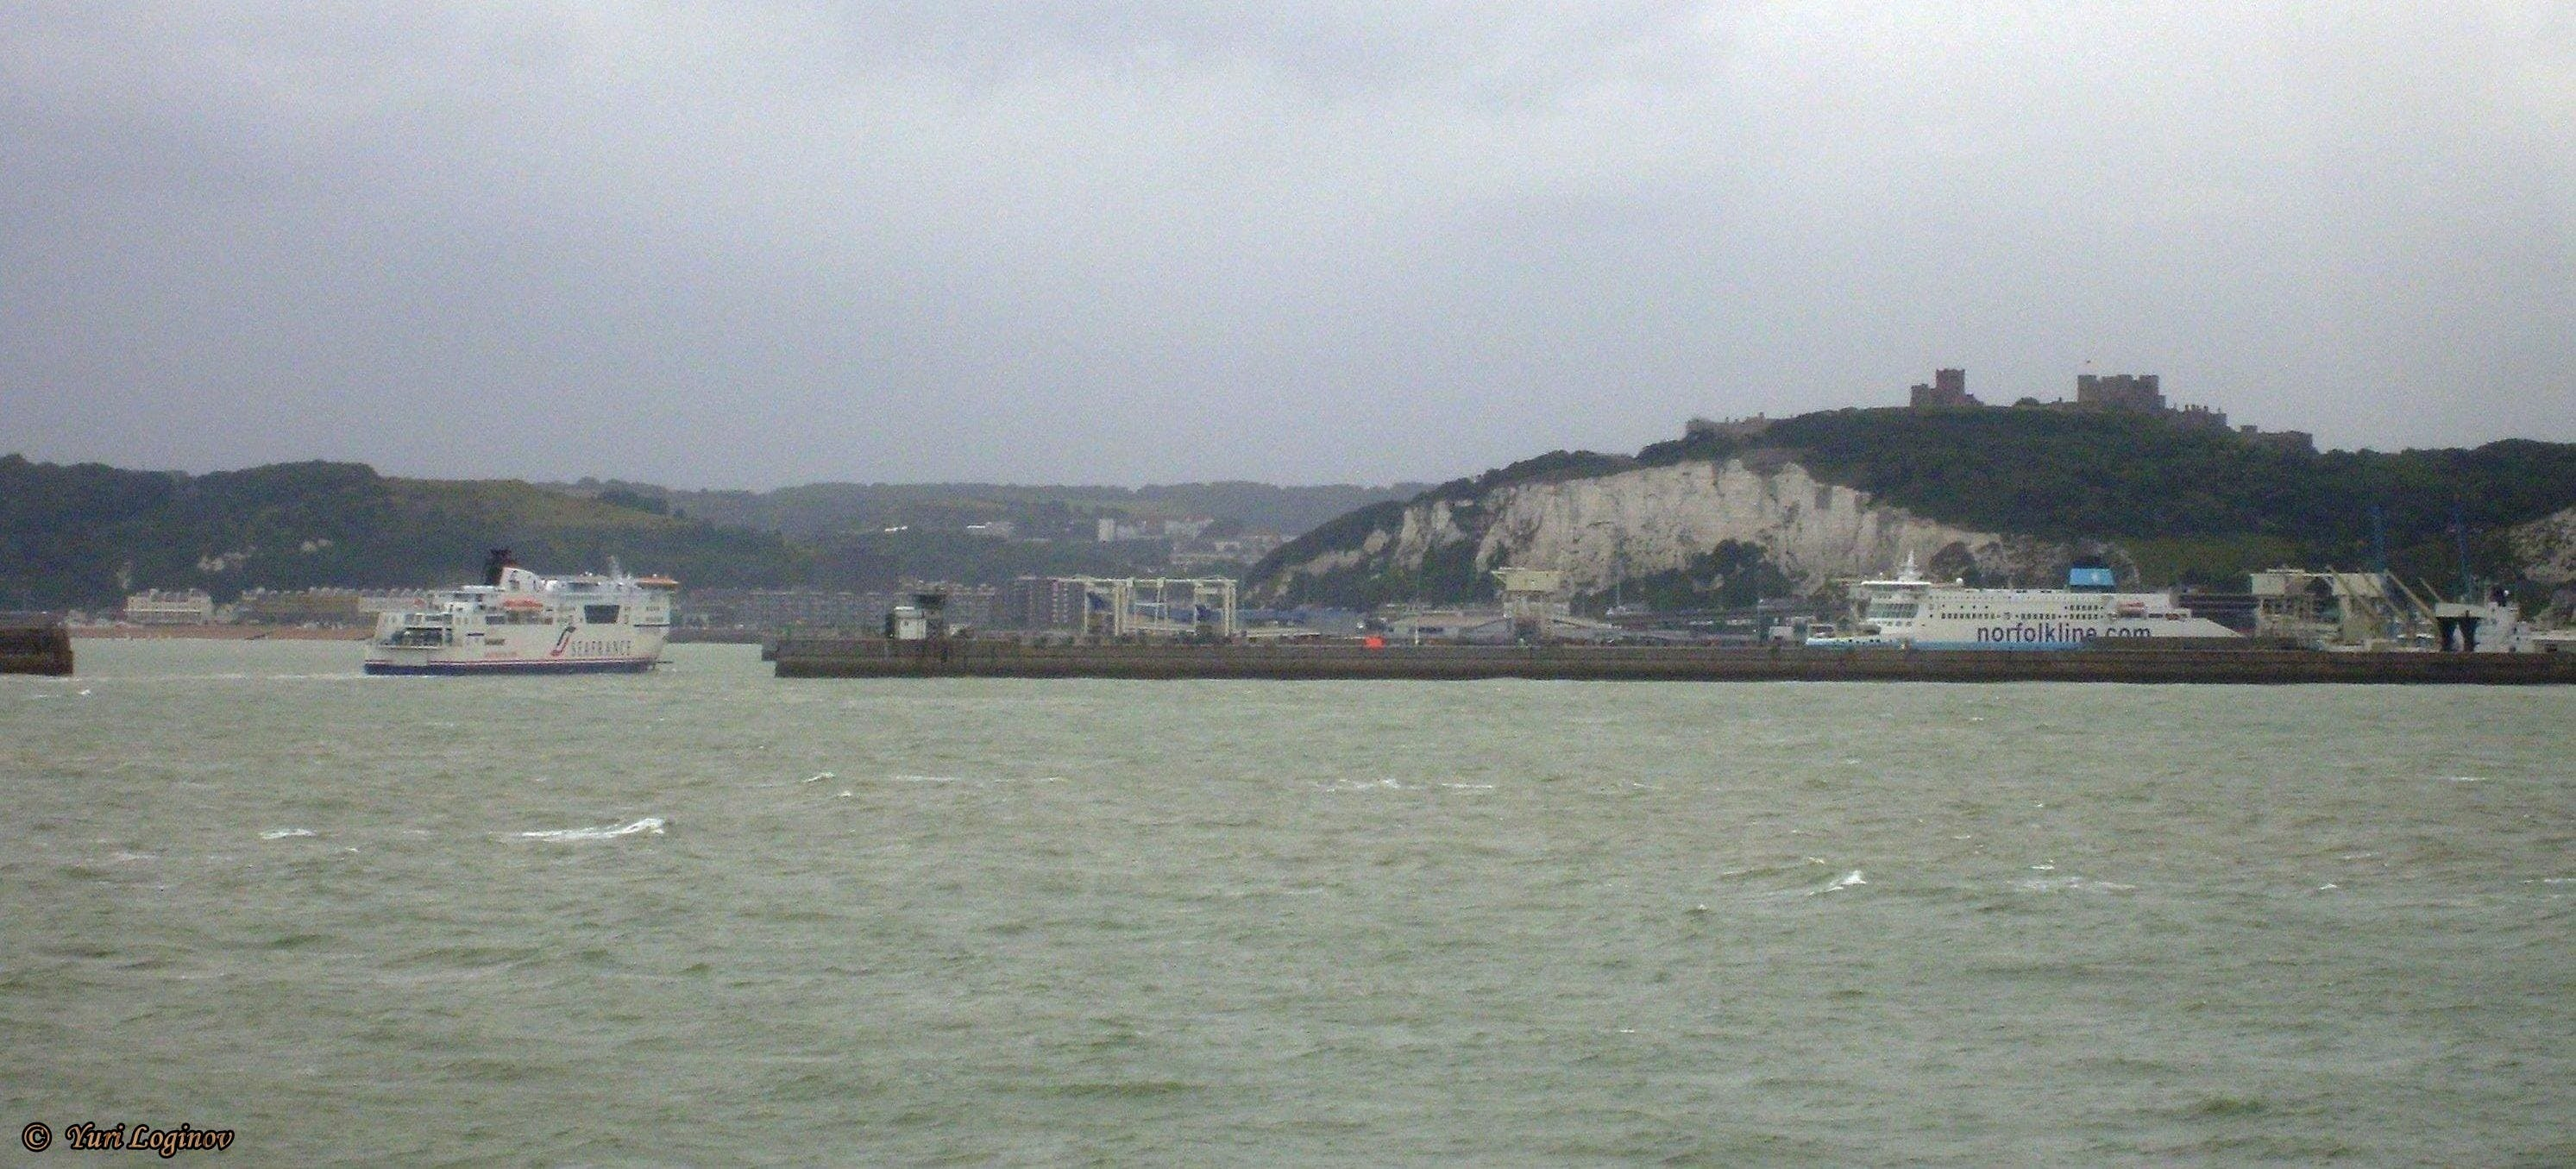 Free stock photo of england, dover, united kingdom, English Channel